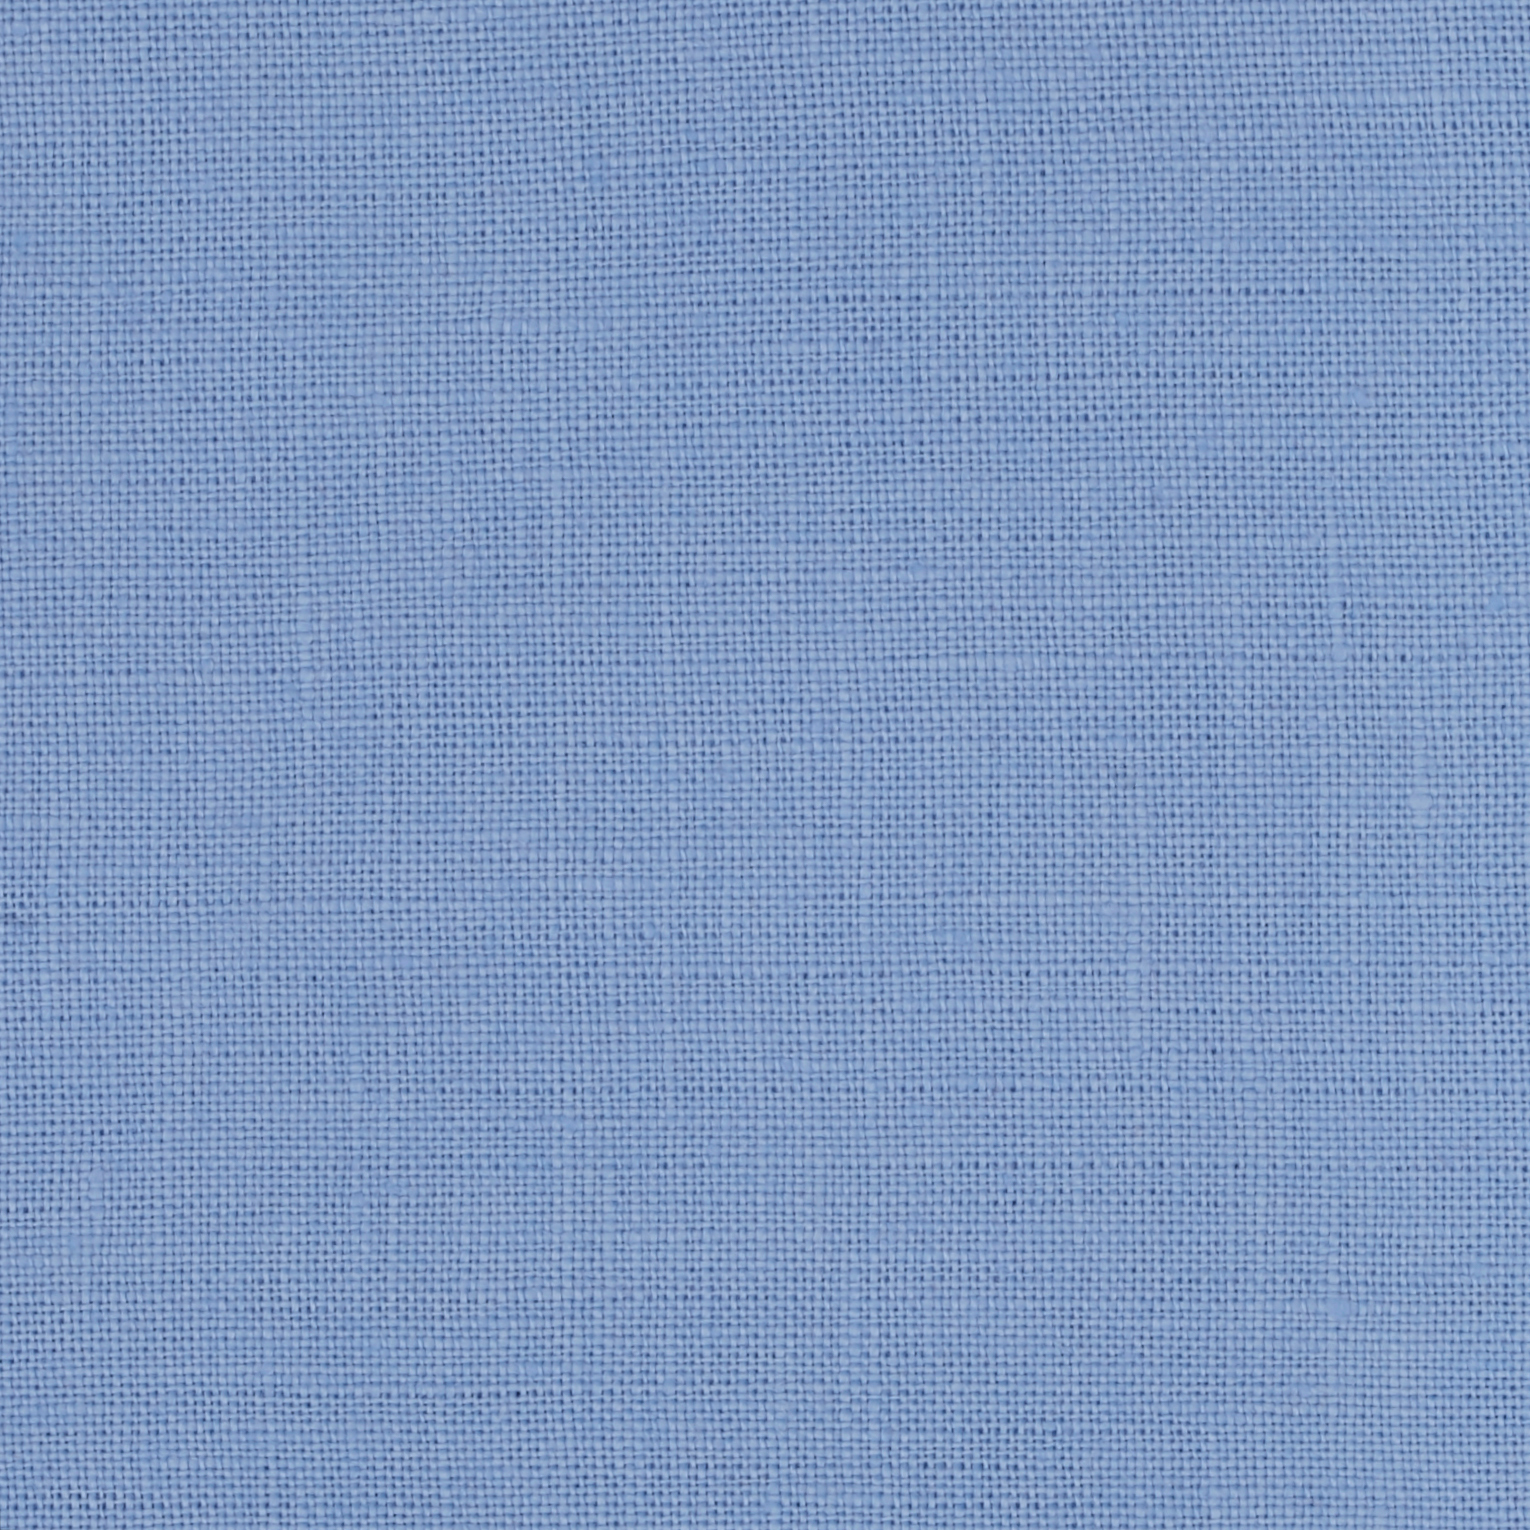 Formenti 100% Linen Chambray Fabric by Spechler-Vogel in USA